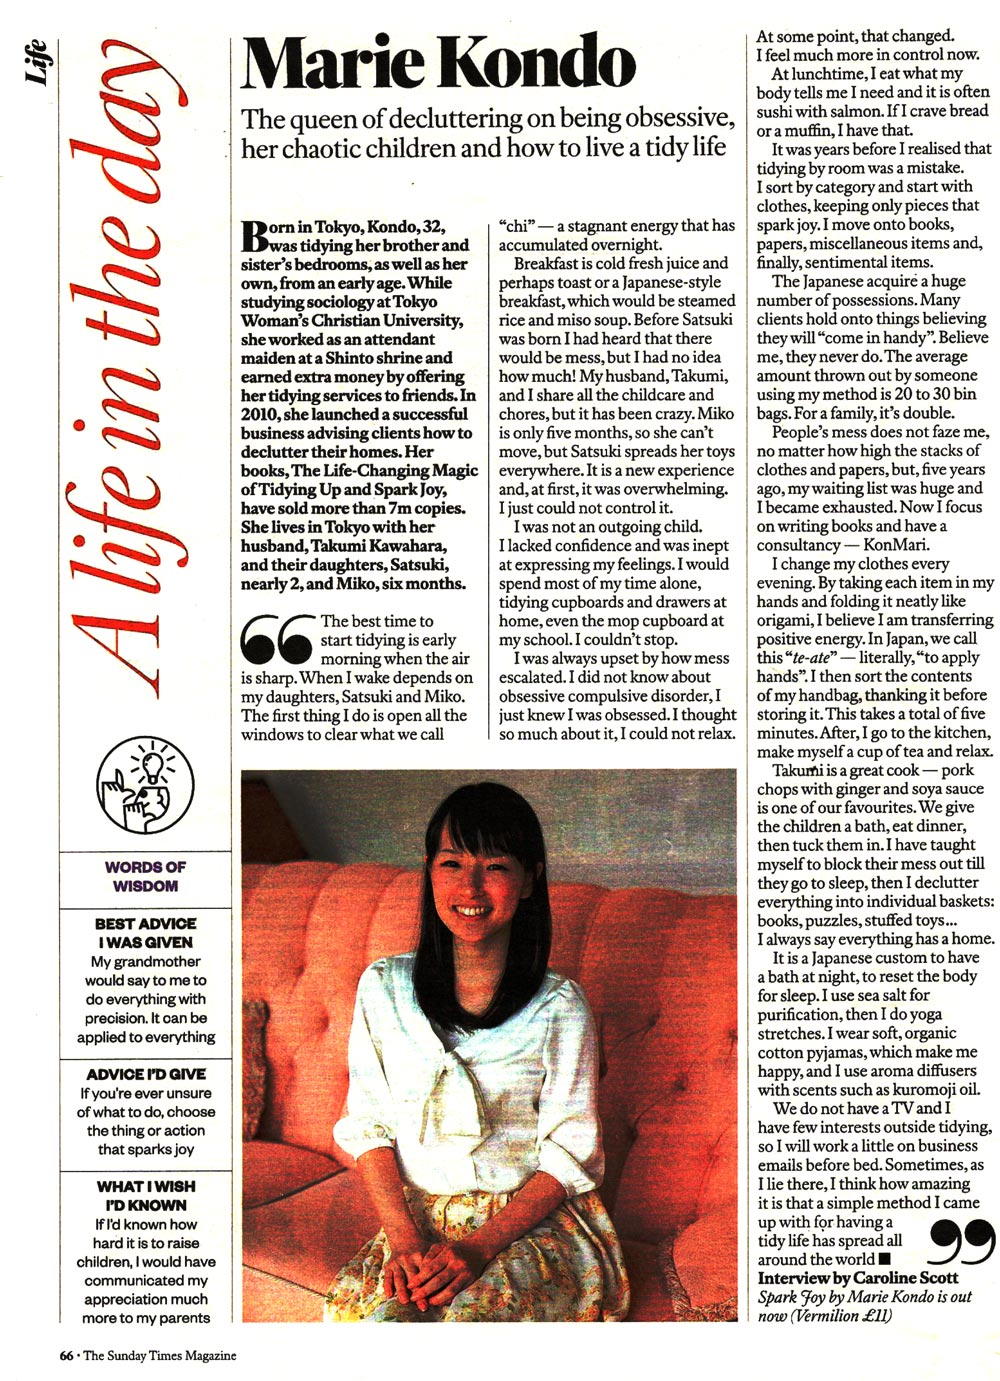 A Life in the day - Marie Kondo